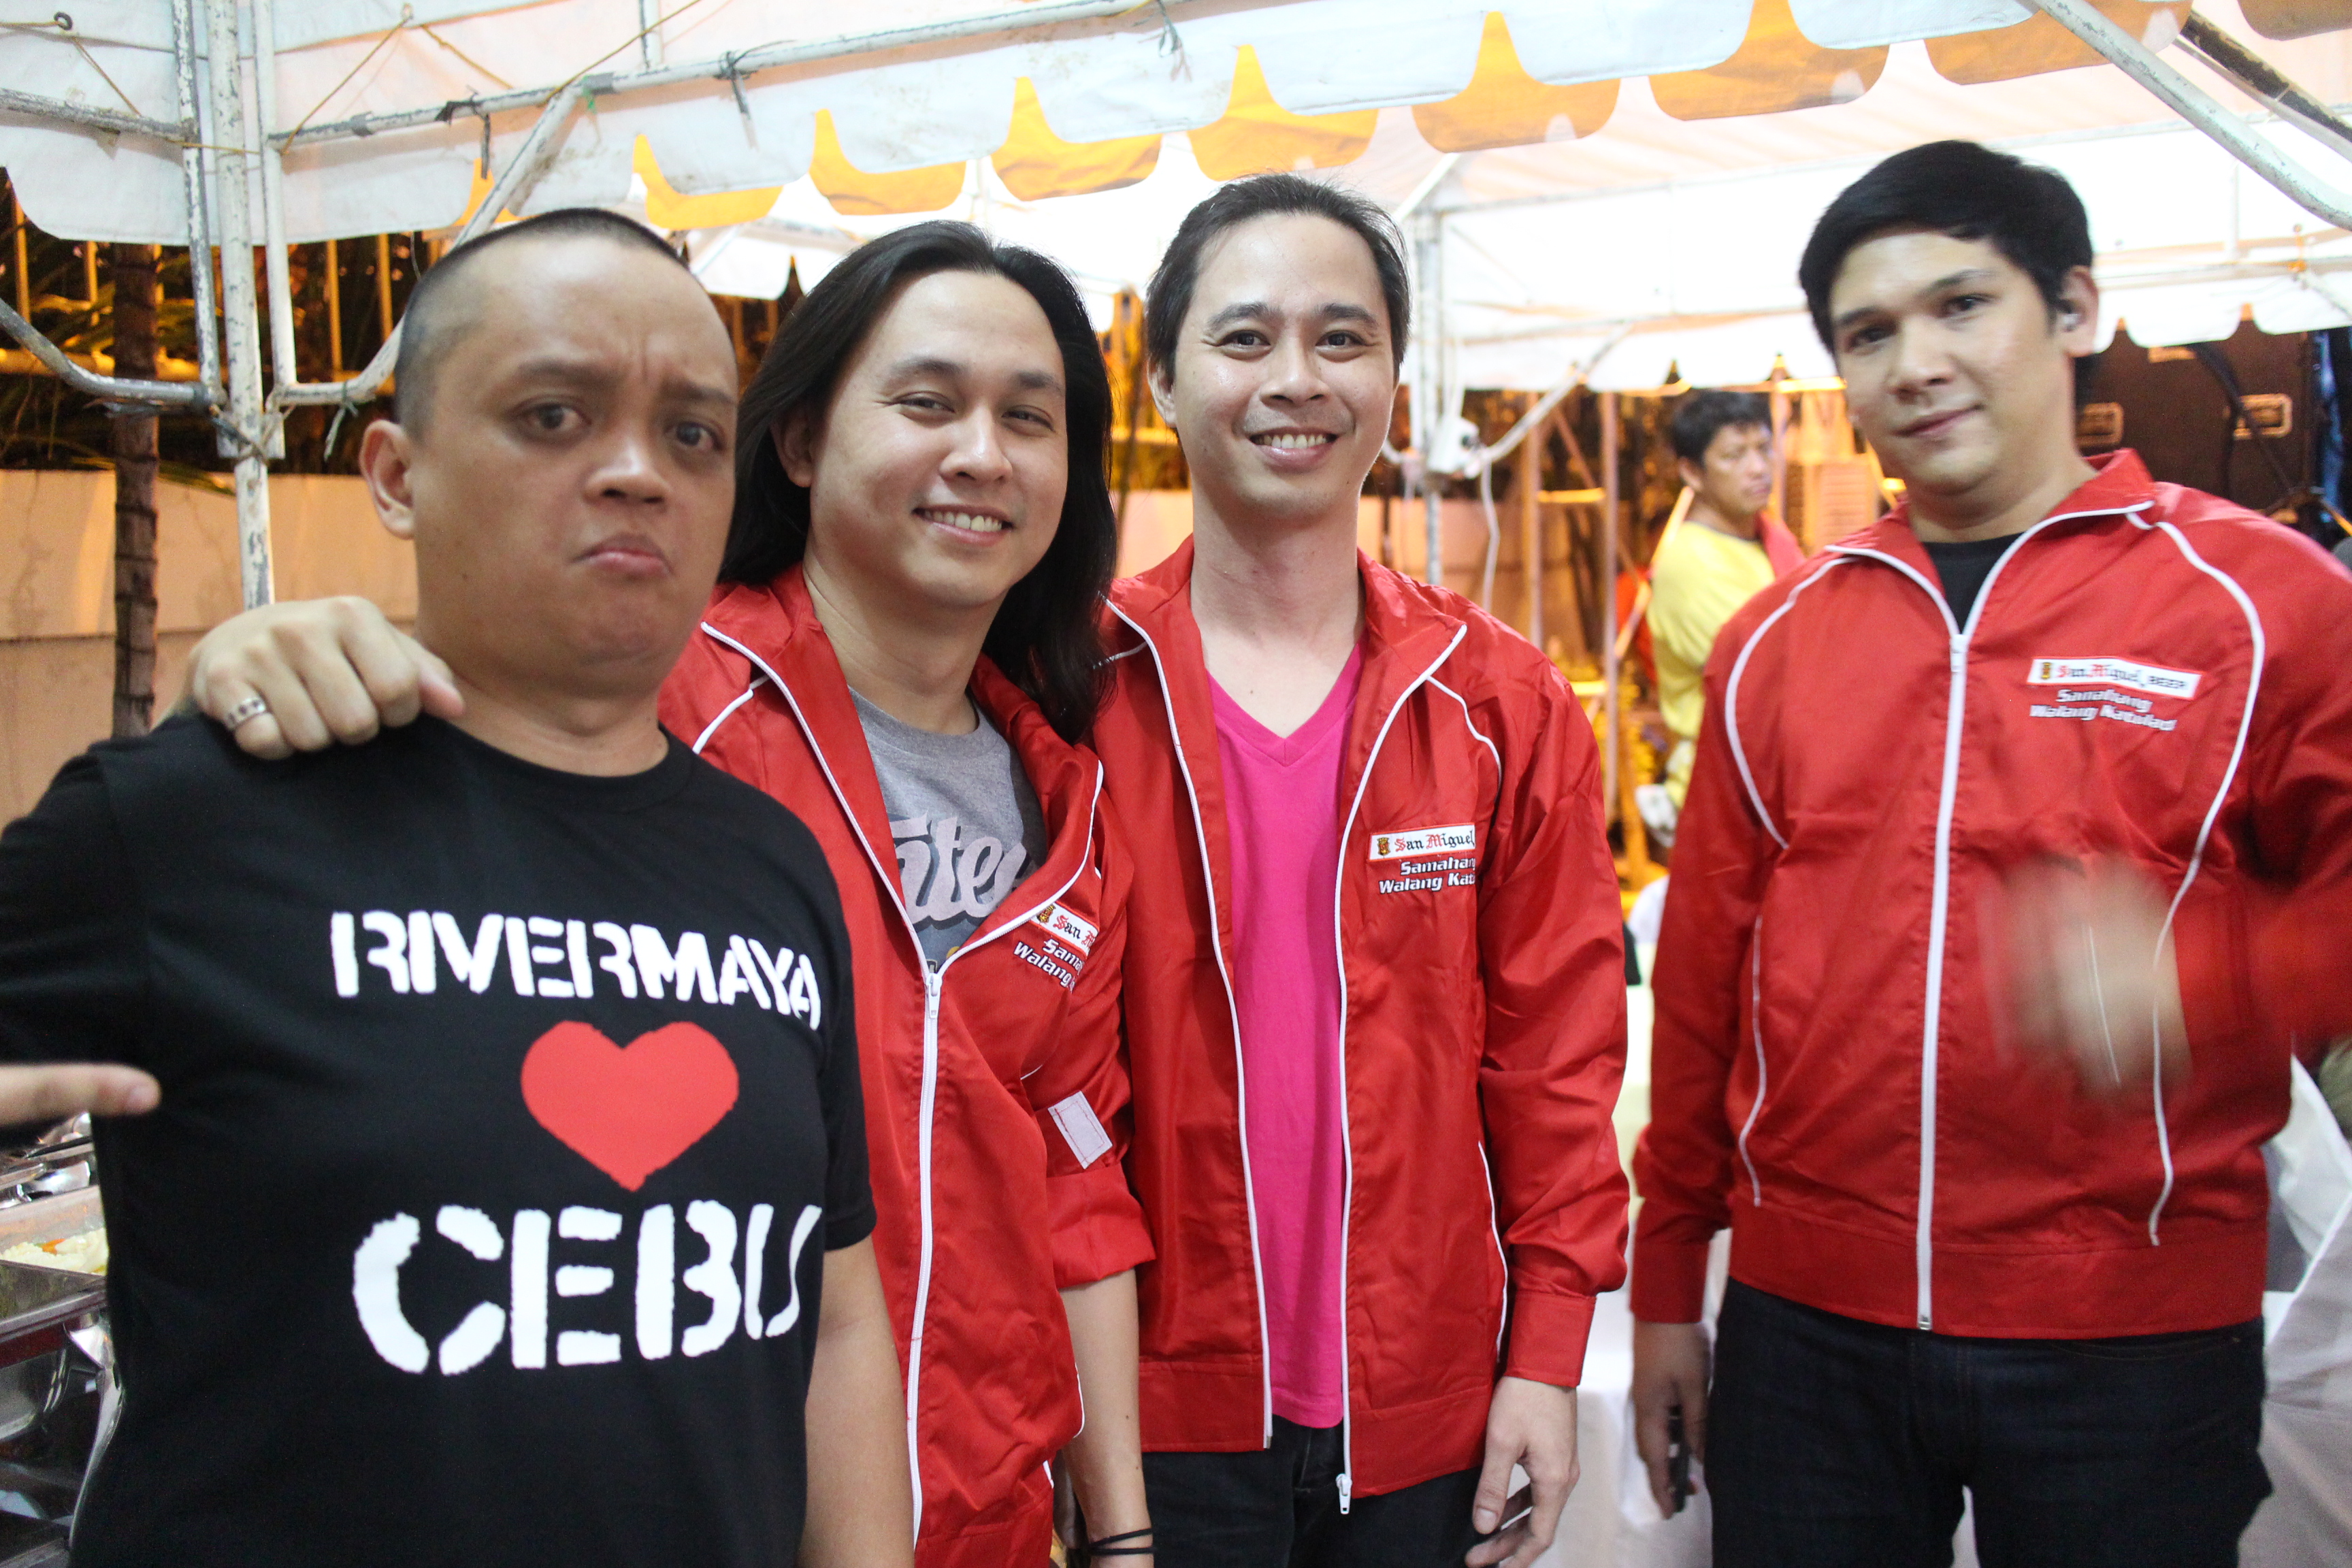 rivermaya-band